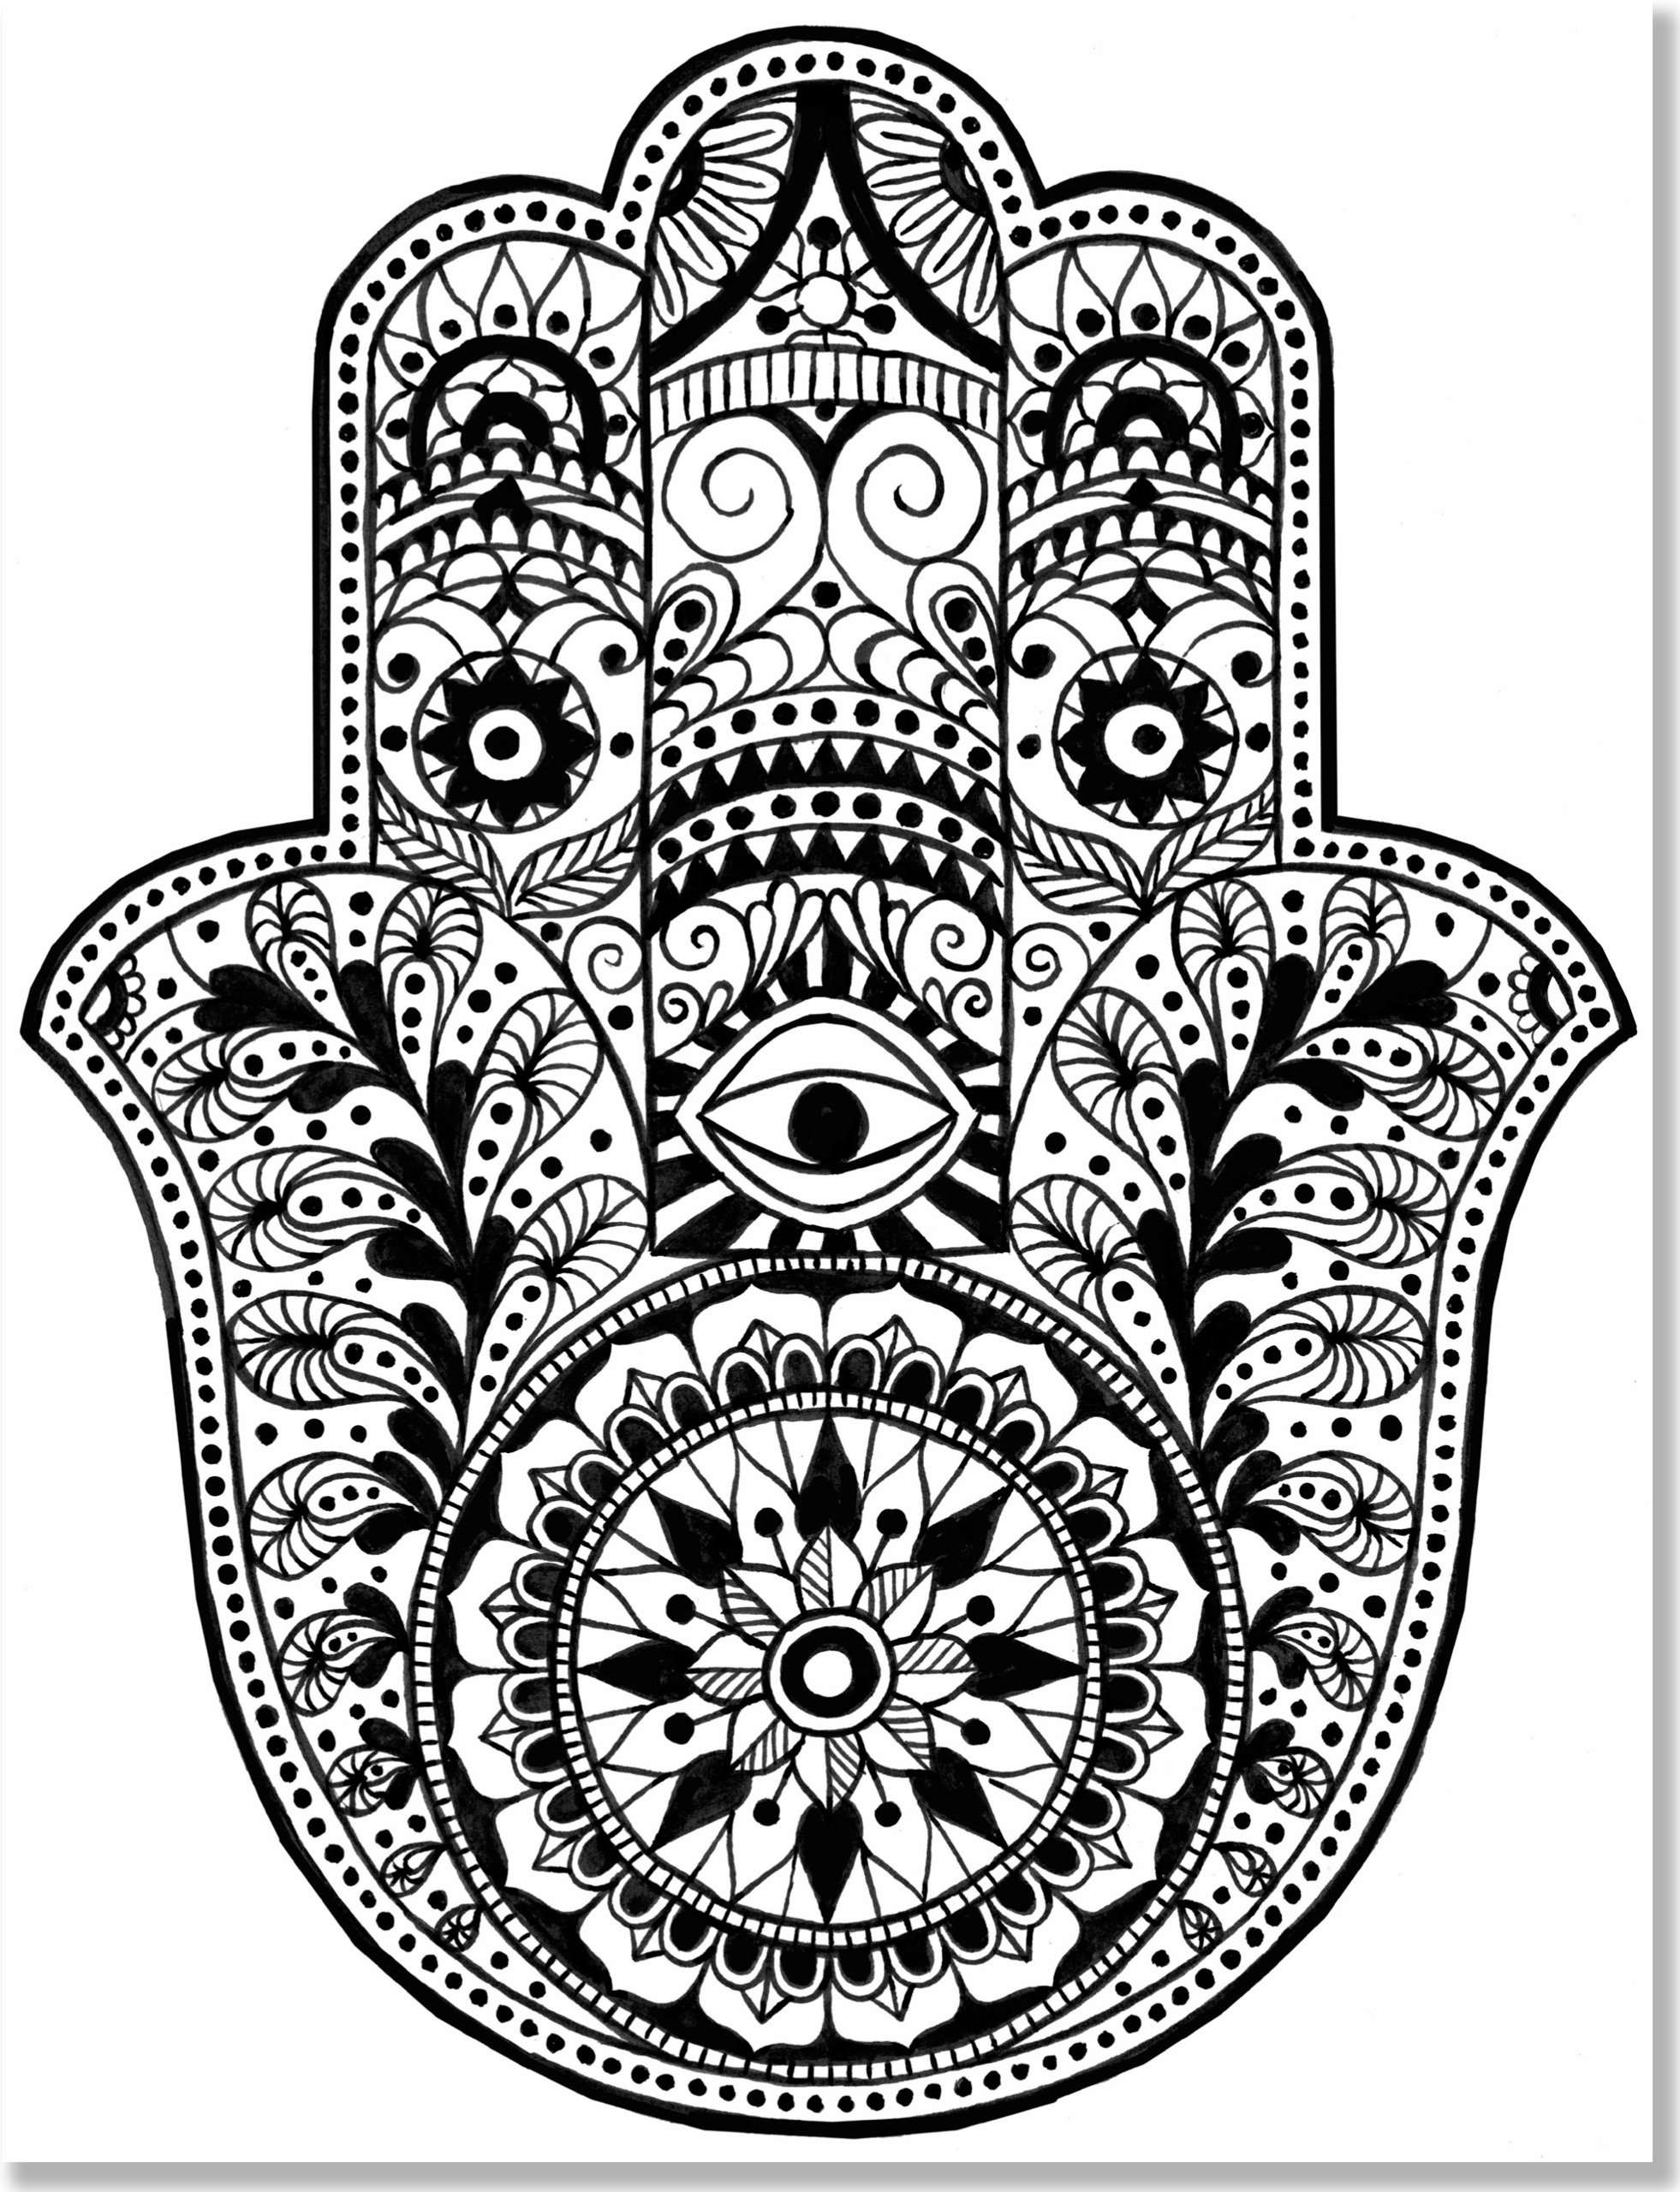 Amazoncom Mandala Designs Adult Coloring Book 31 stress